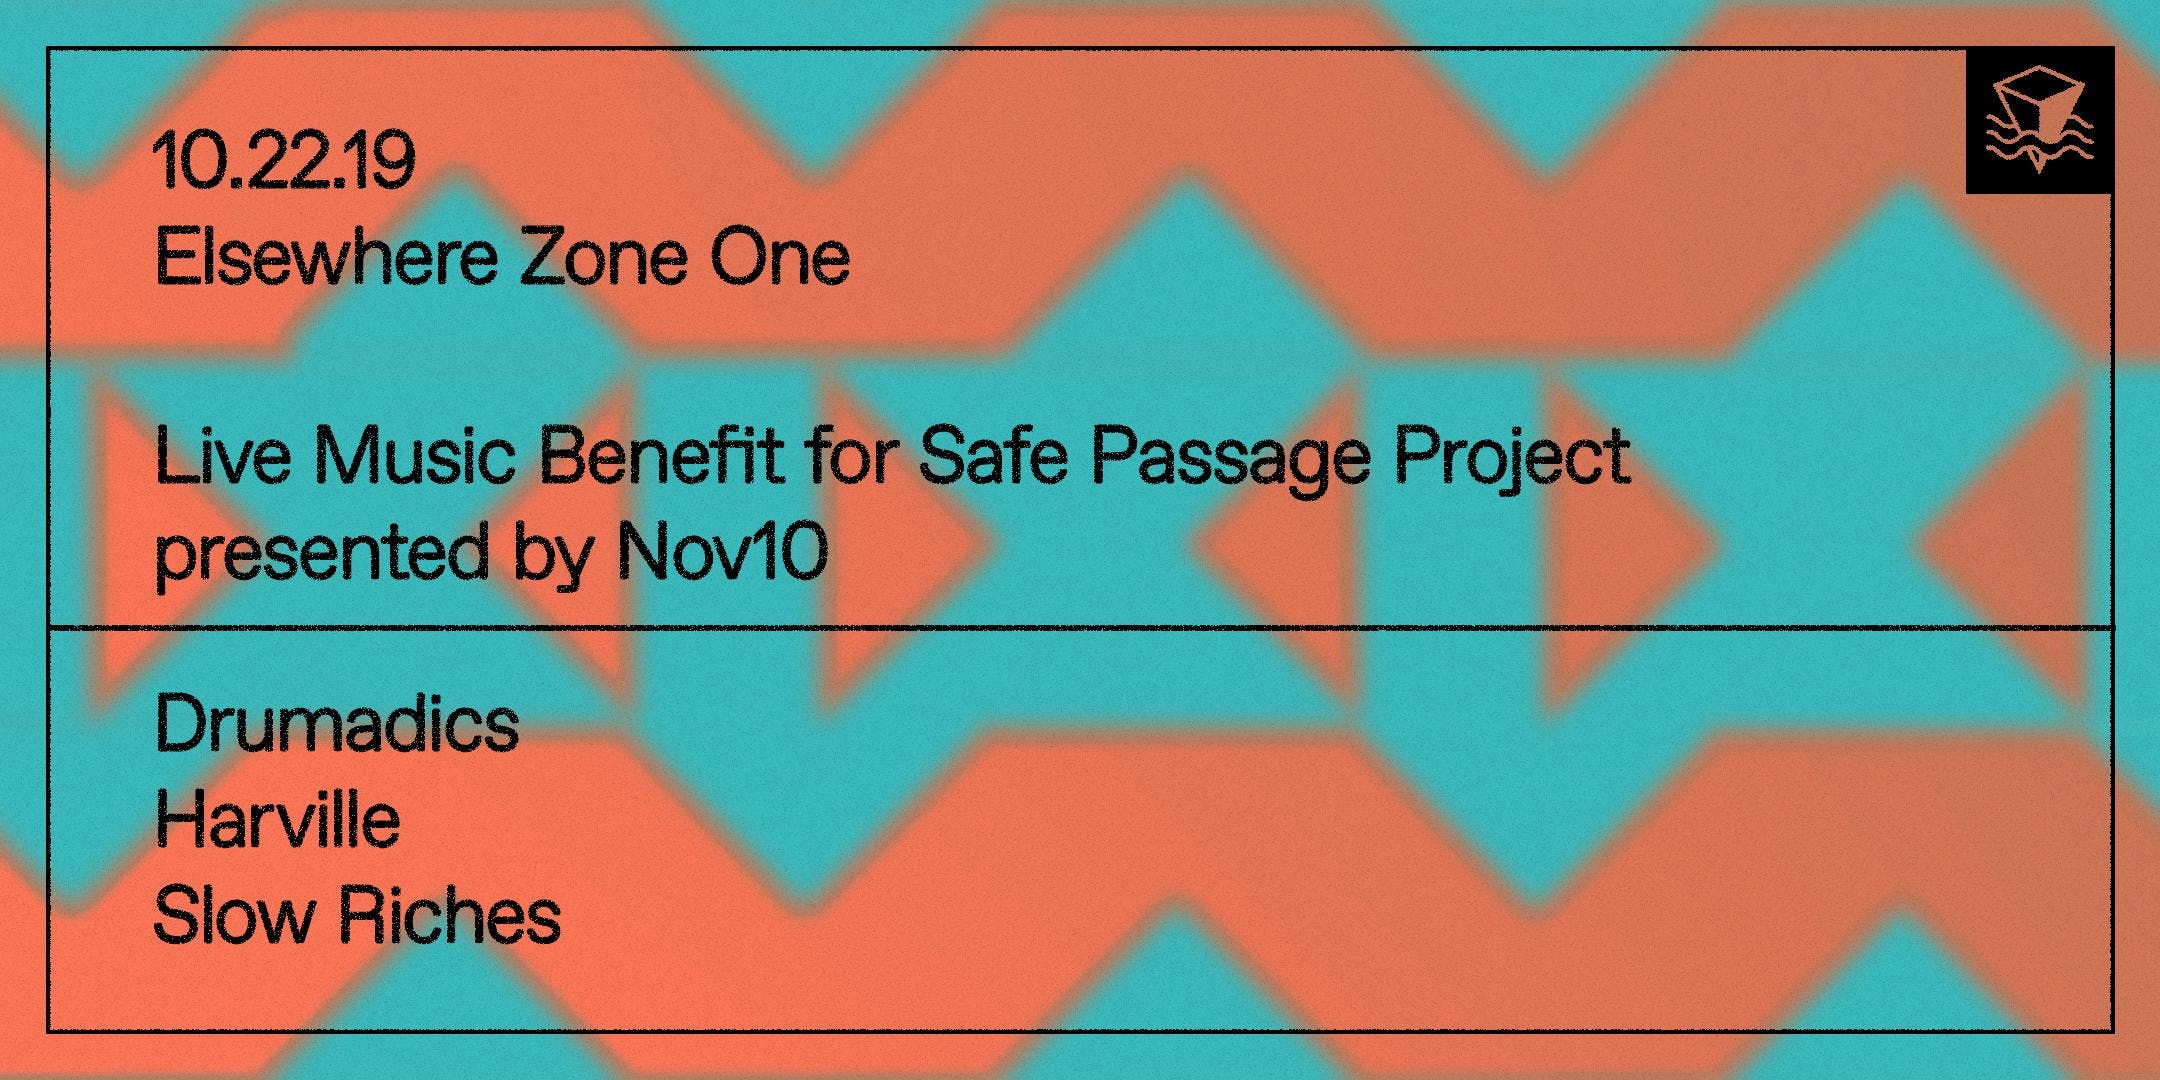 Live Music Benefit for Safe Passage Project presented by Nov10 w/ Drumadics, Harville, Slow Riches